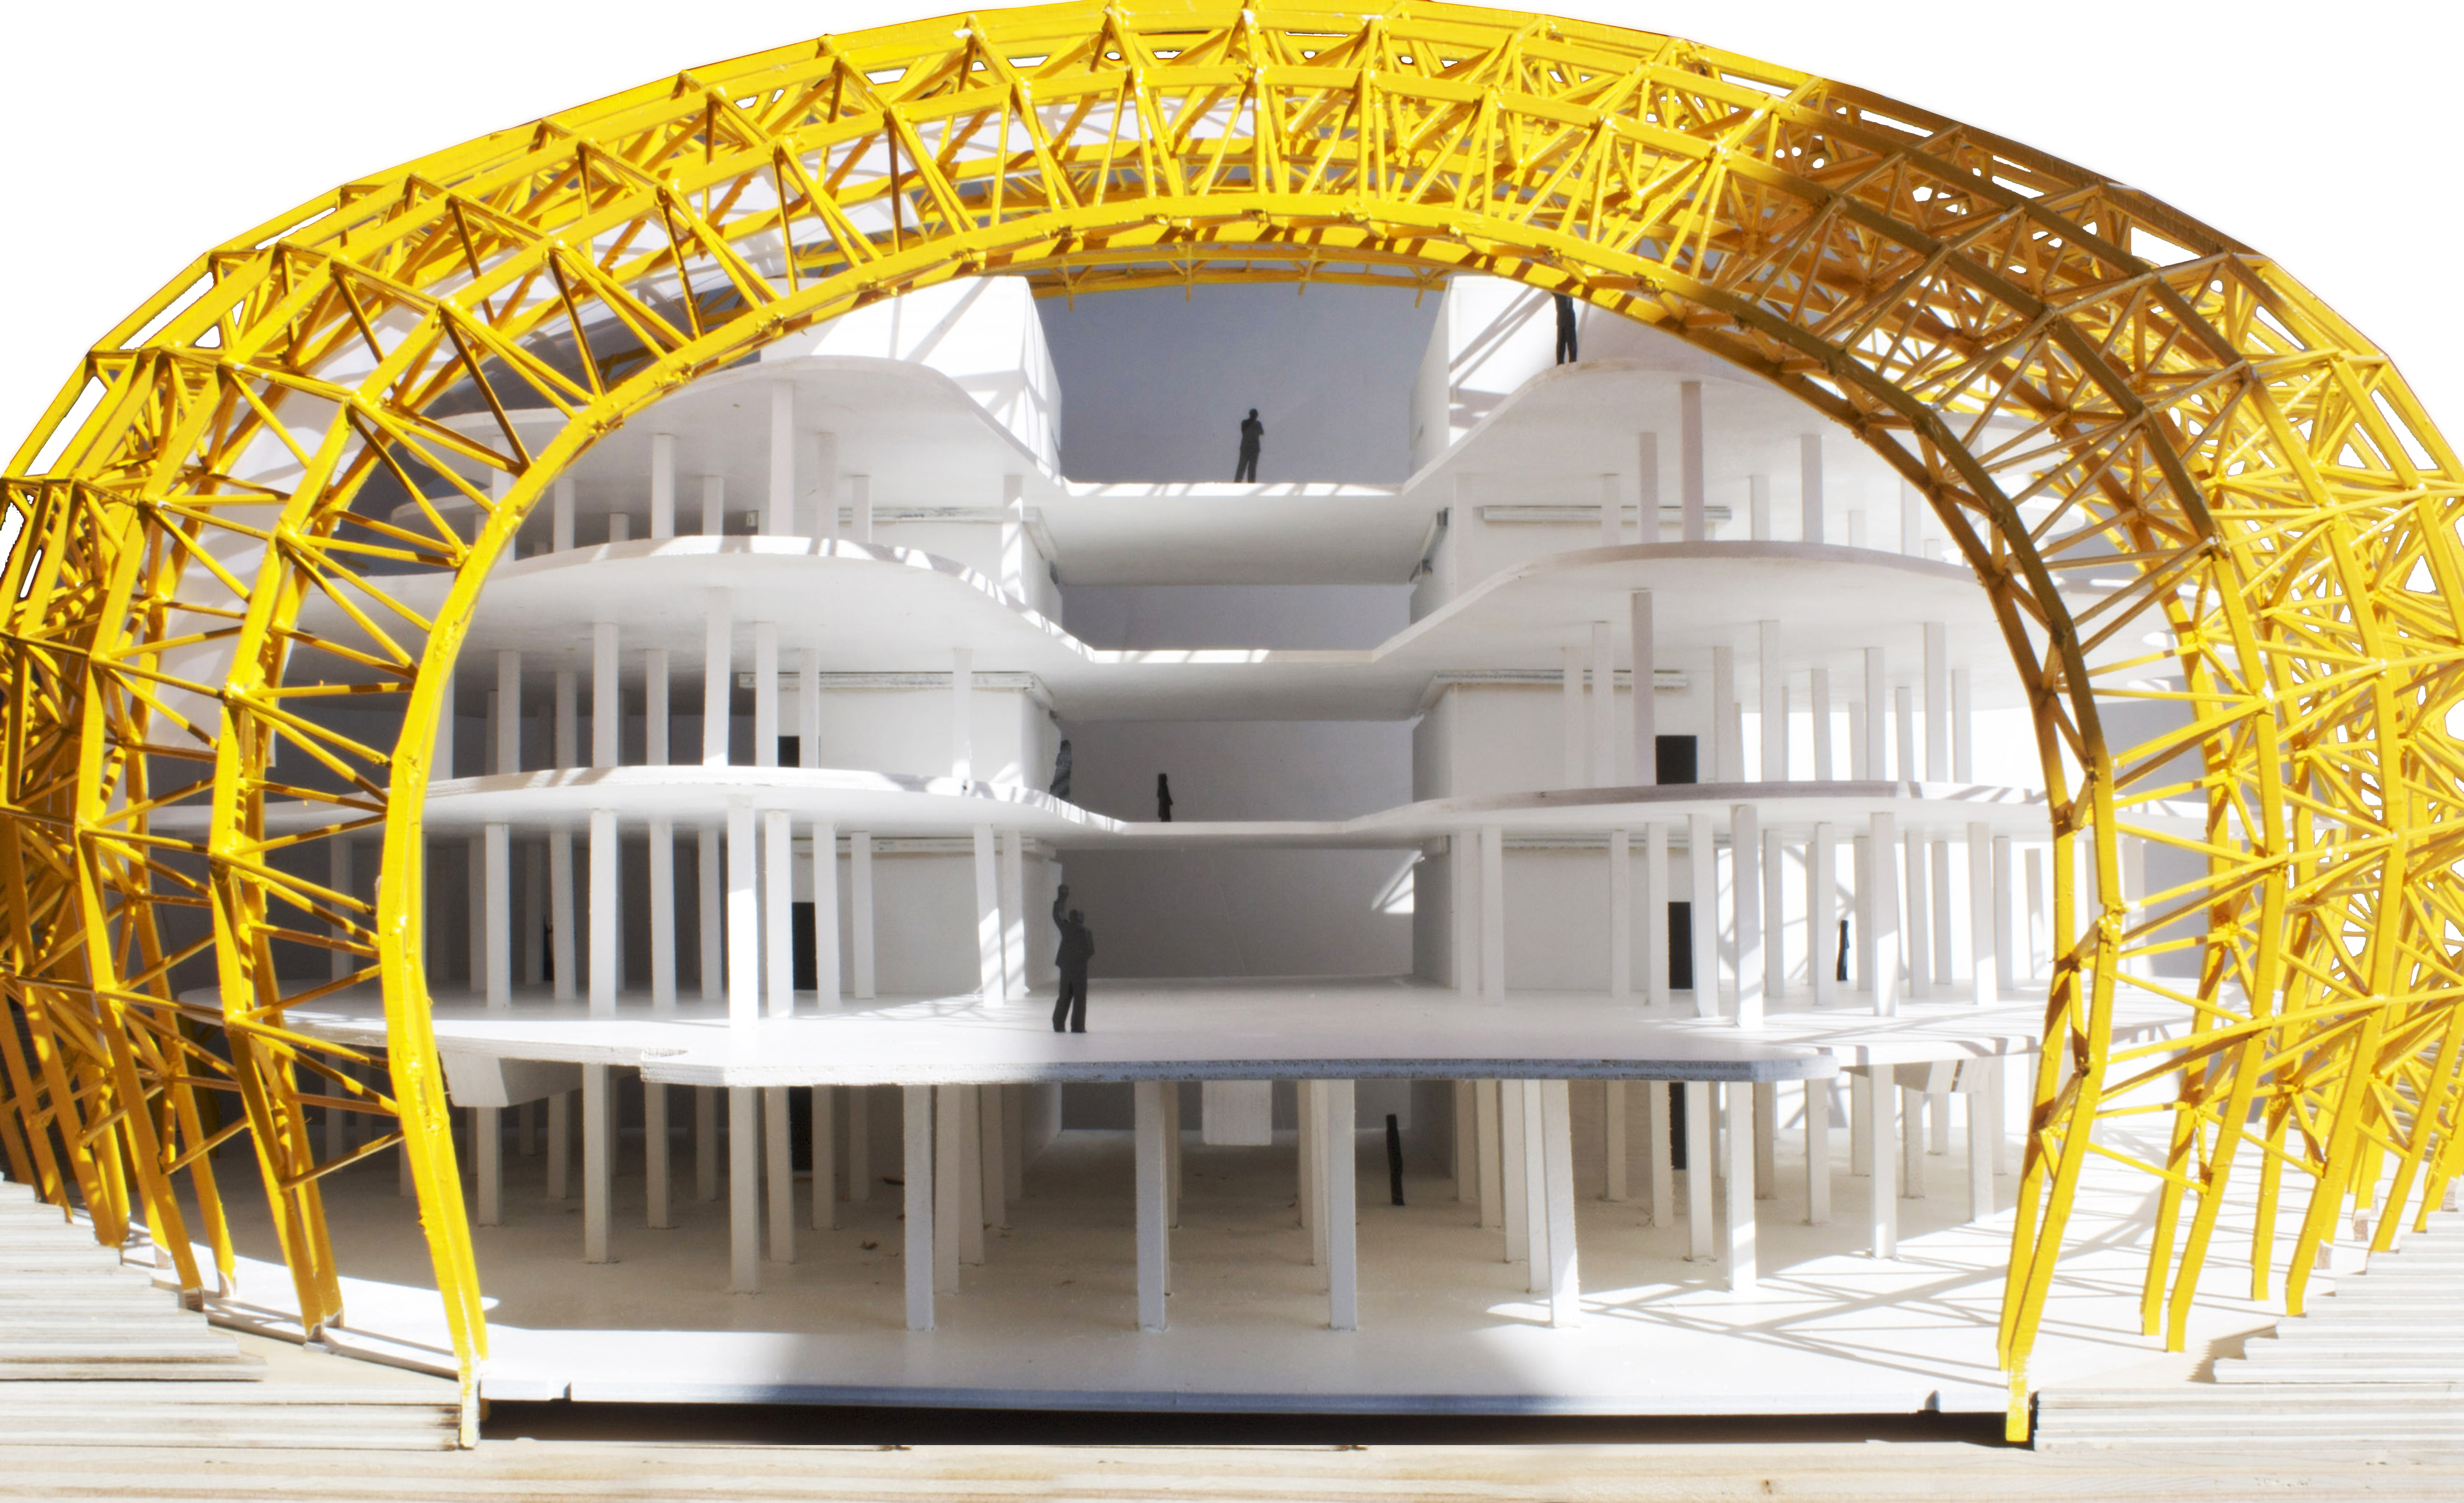 Berlin Free Philological Library Model  Stephen Stewart  Archinect